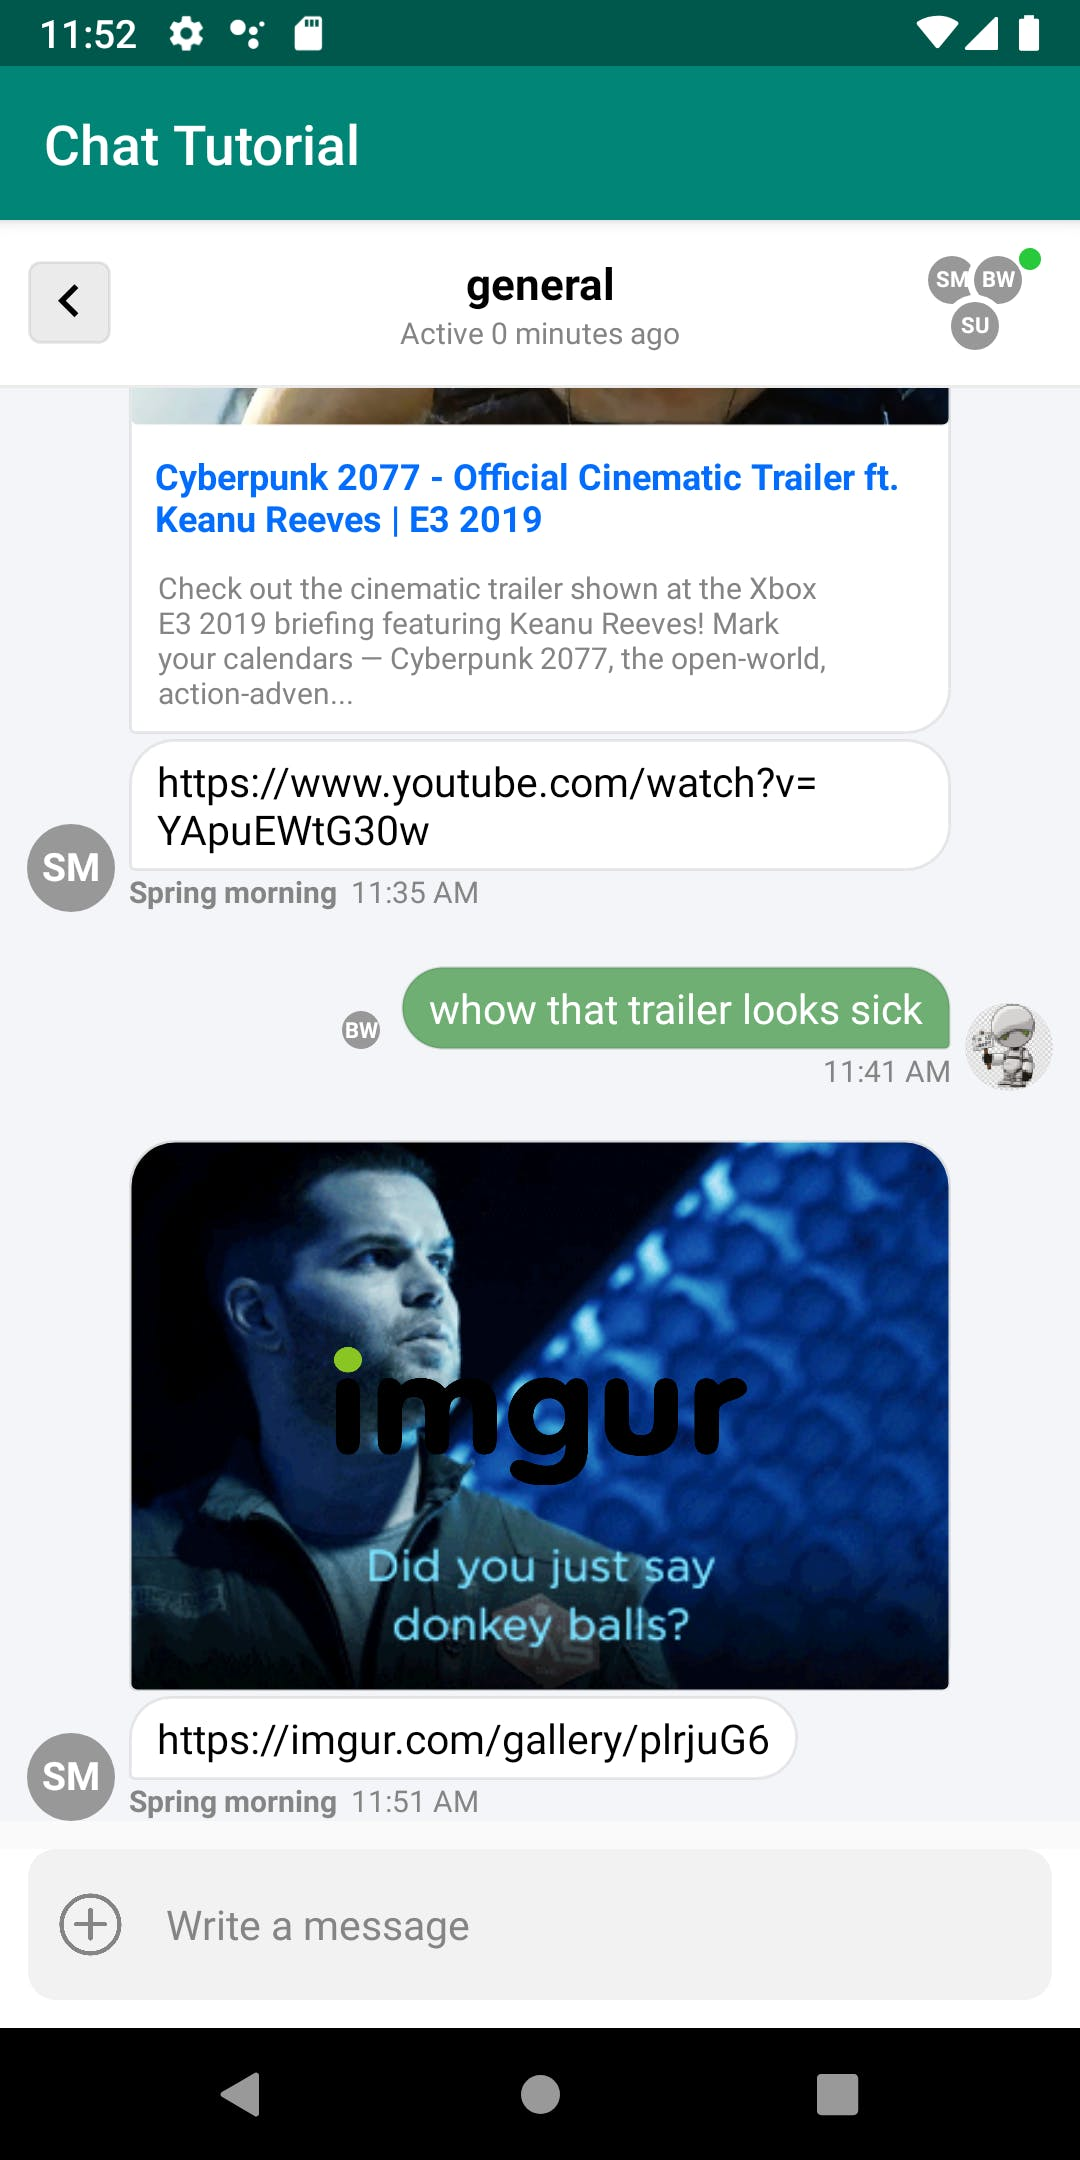 Imgur Logo overlay on the in-app messaging chat interface